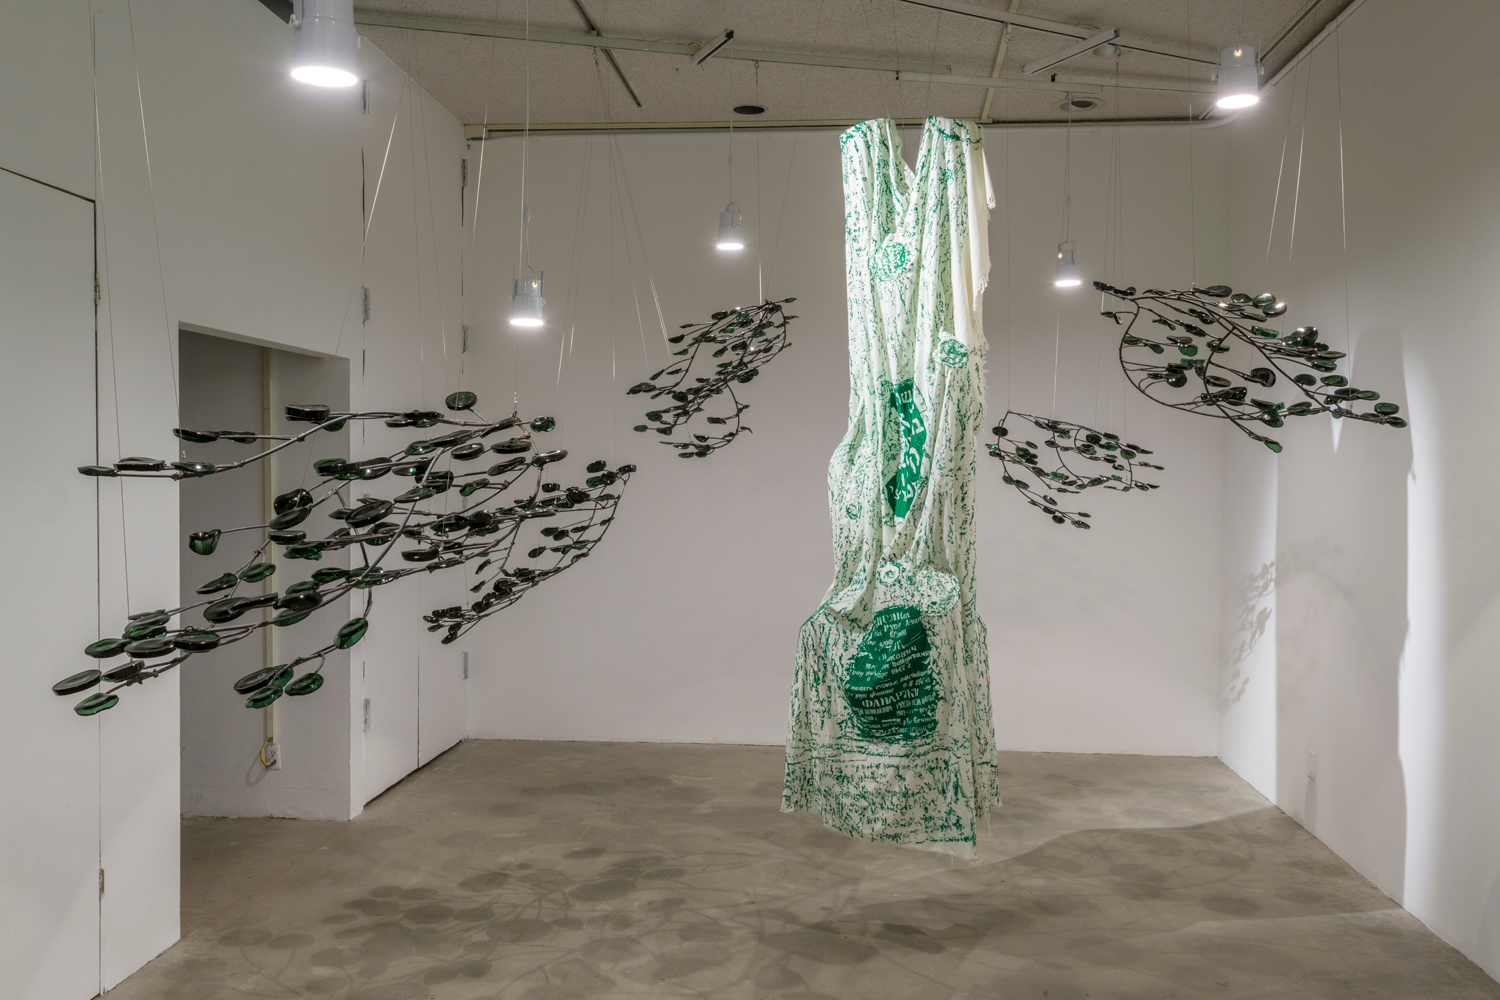 In this artwork installation by the artist Jenny Yurshansky, there are six sculptures depicting tree branches with leaves hanging the ceiling. The branch part of the sculpture is made of metal, and the leaves are made of dark green optometric glass. These sculptures are hanging and placed to surround another sculpture hanging in the center. This sculpture depicts a tree with no branches, with a white cloth draped over it. The white cloth has several embroidered texts in Yiddish and patterns in a forest-green color.